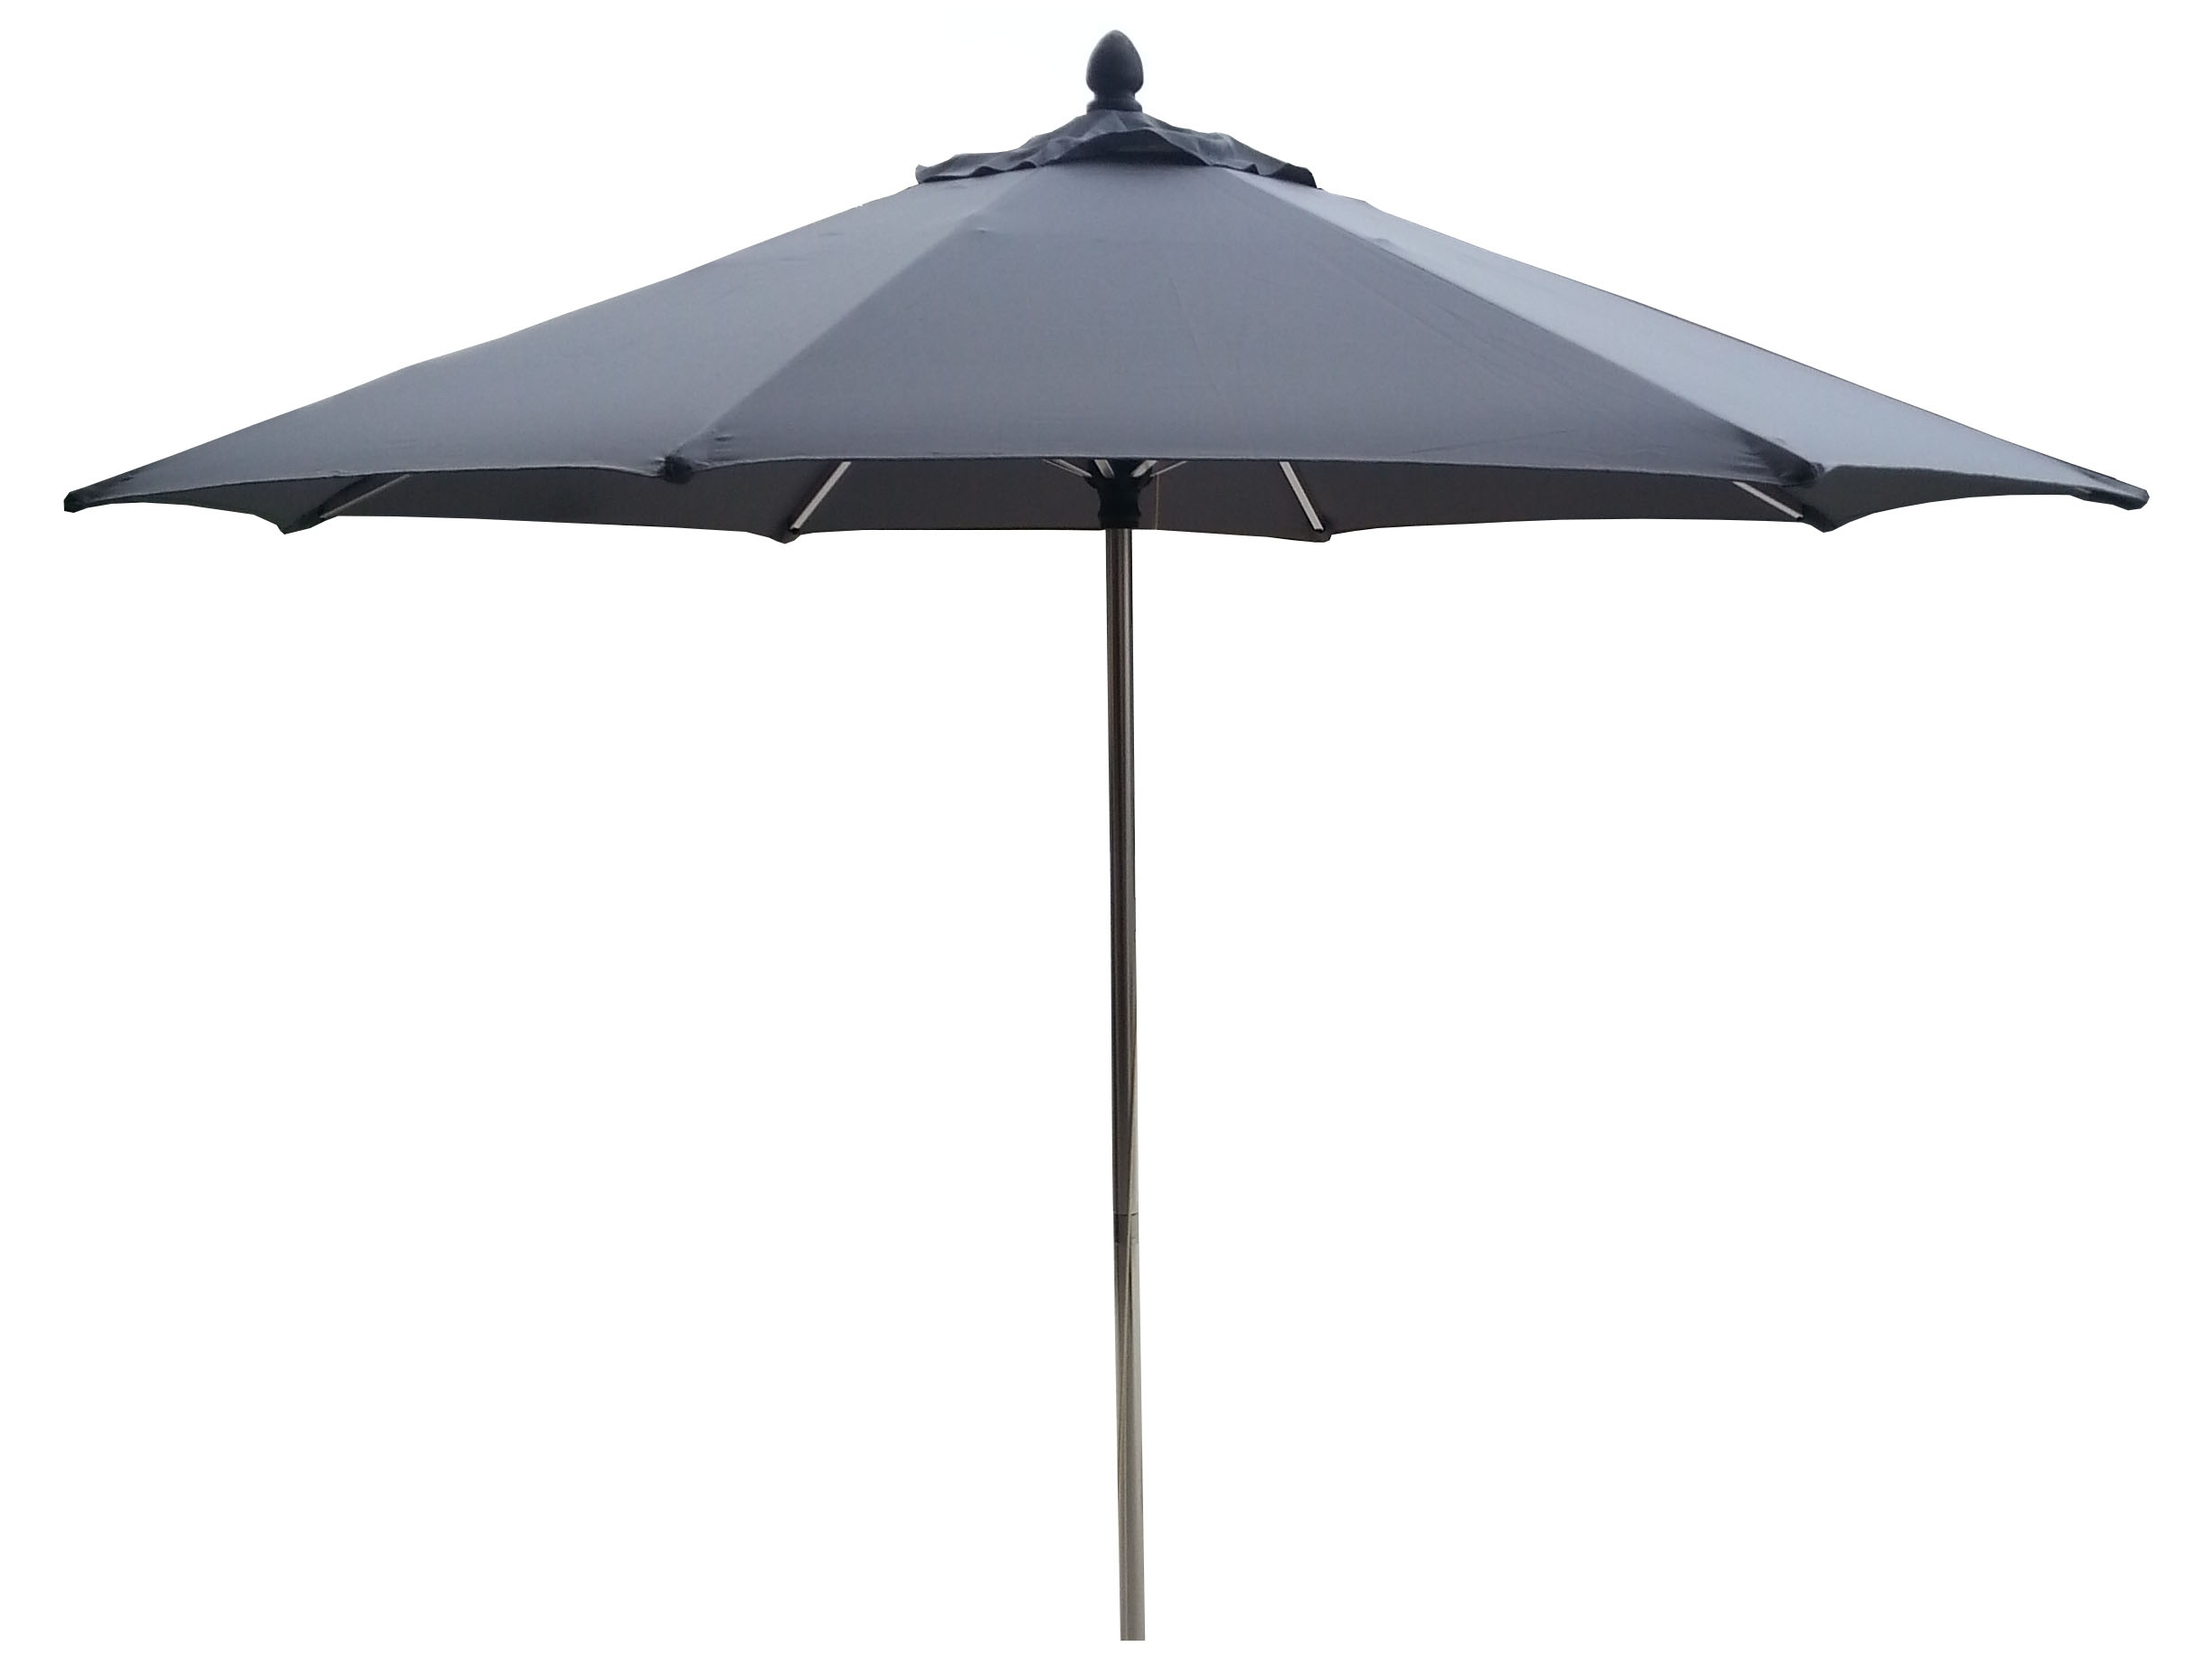 Market Umbrella Archives – Rainbrella With Regard To Latest Grey Patio Umbrellas (View 10 of 20)